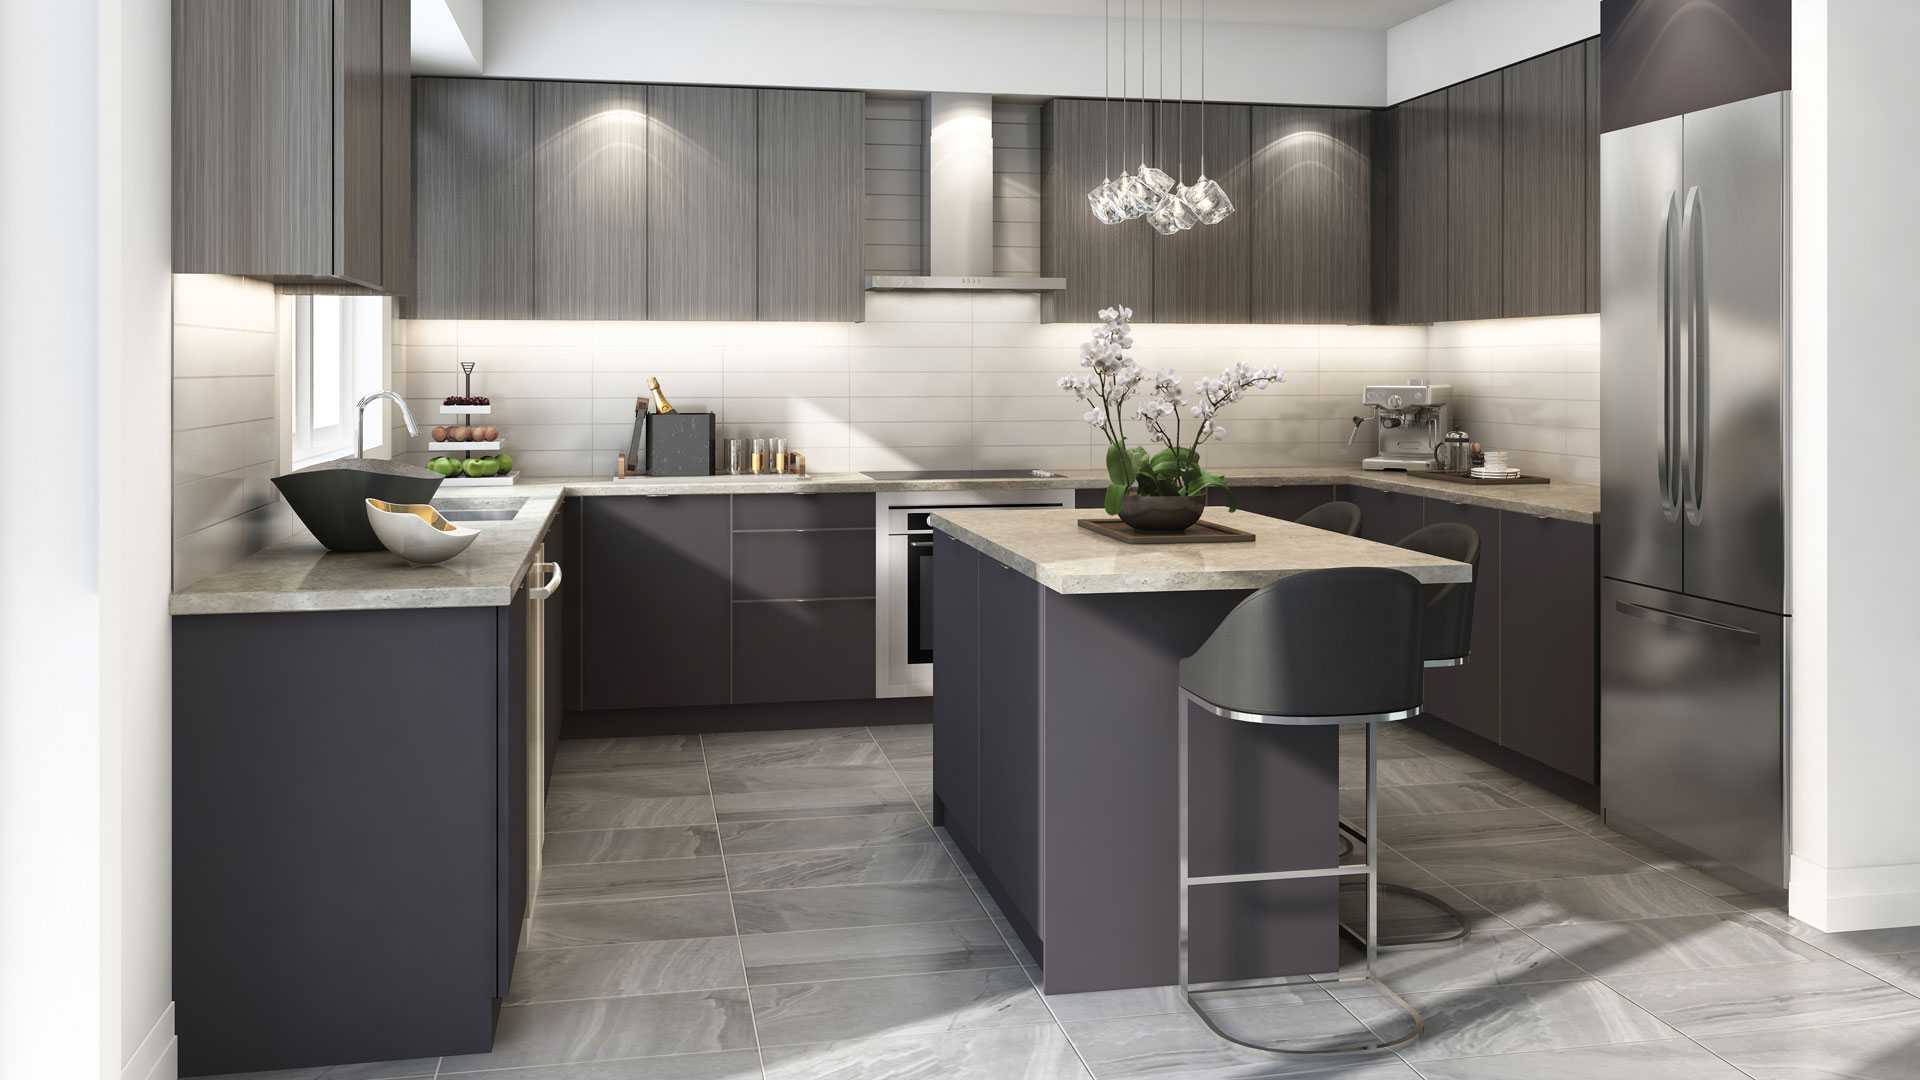 galley-luxe-1-f.jpg